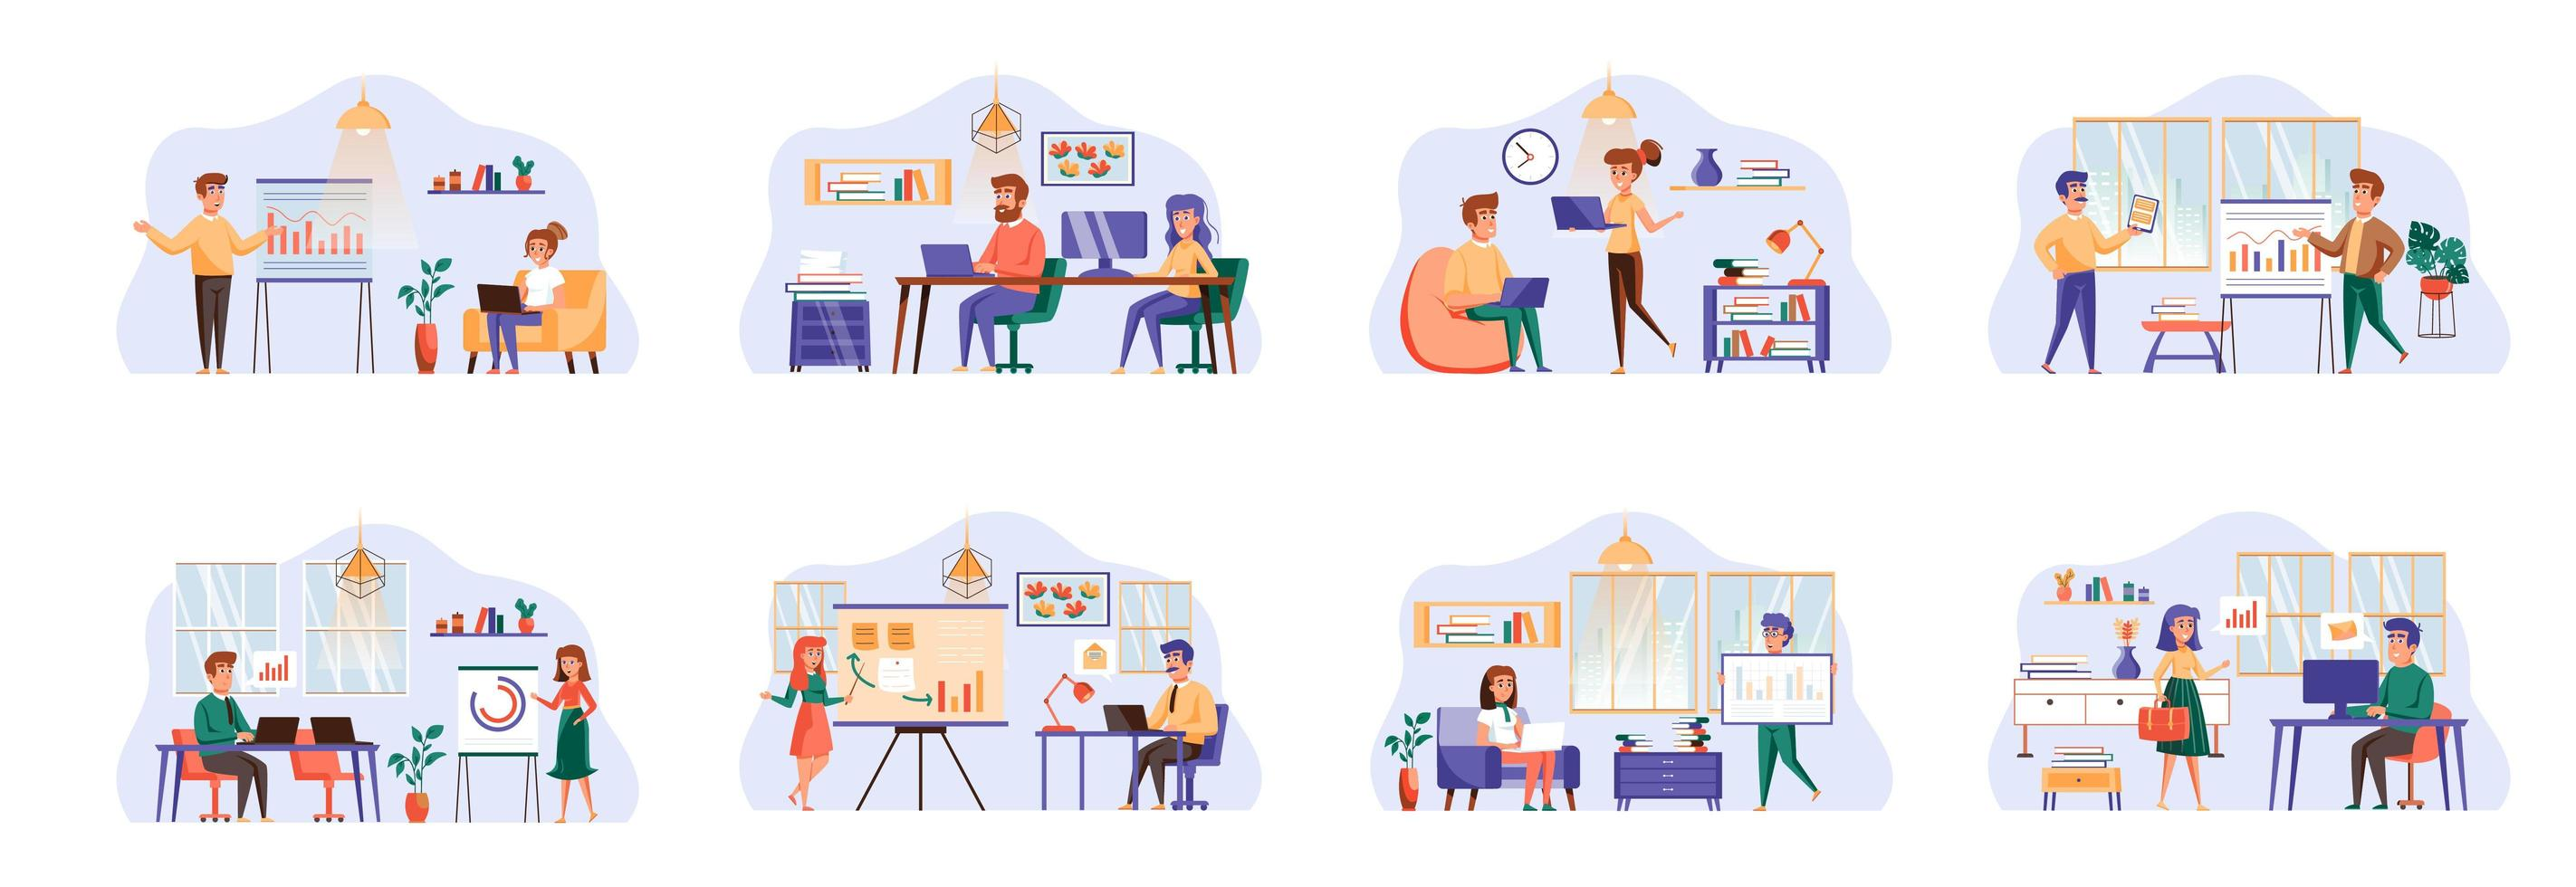 Content management bundle of scenes with flat people characters. vector